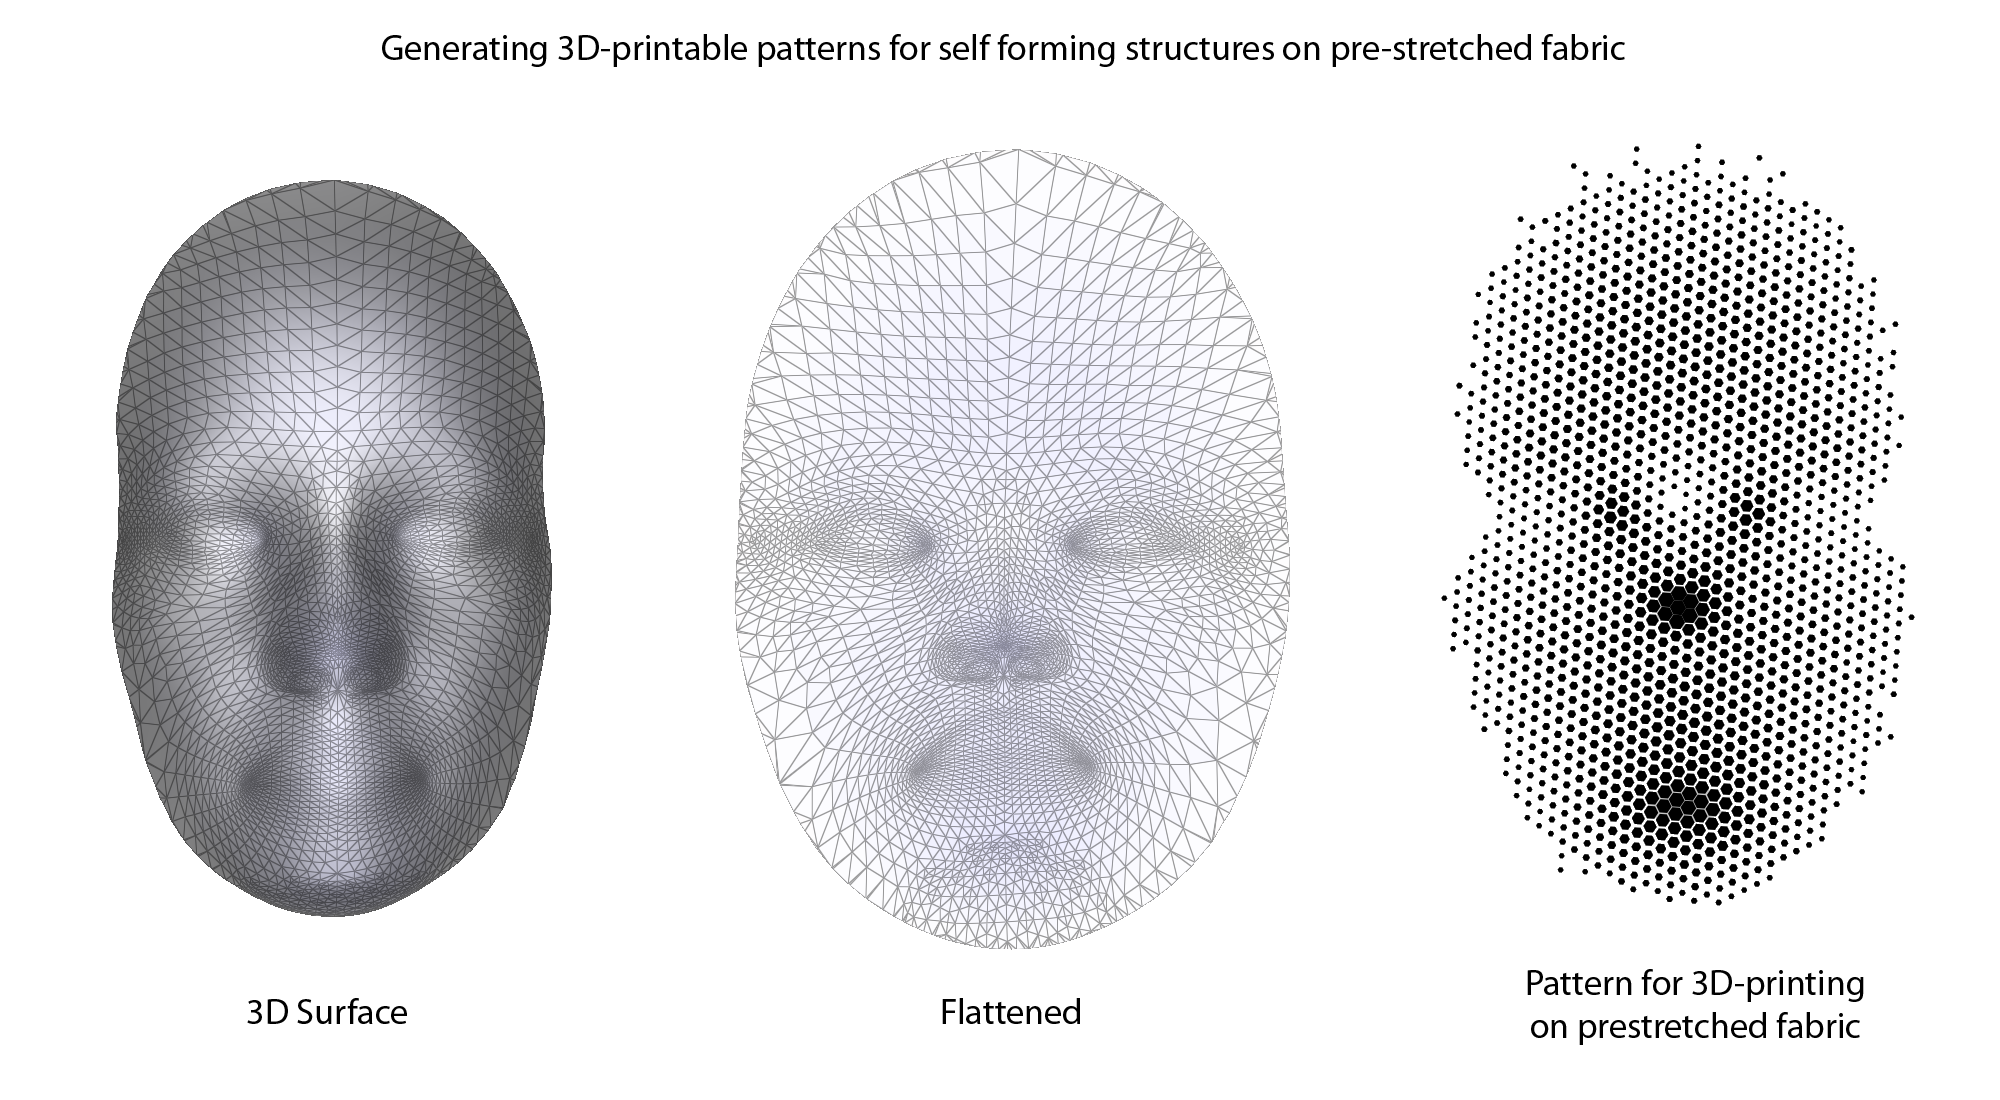 Self Forming Structures: An Exploration into 3D Printing on Pre